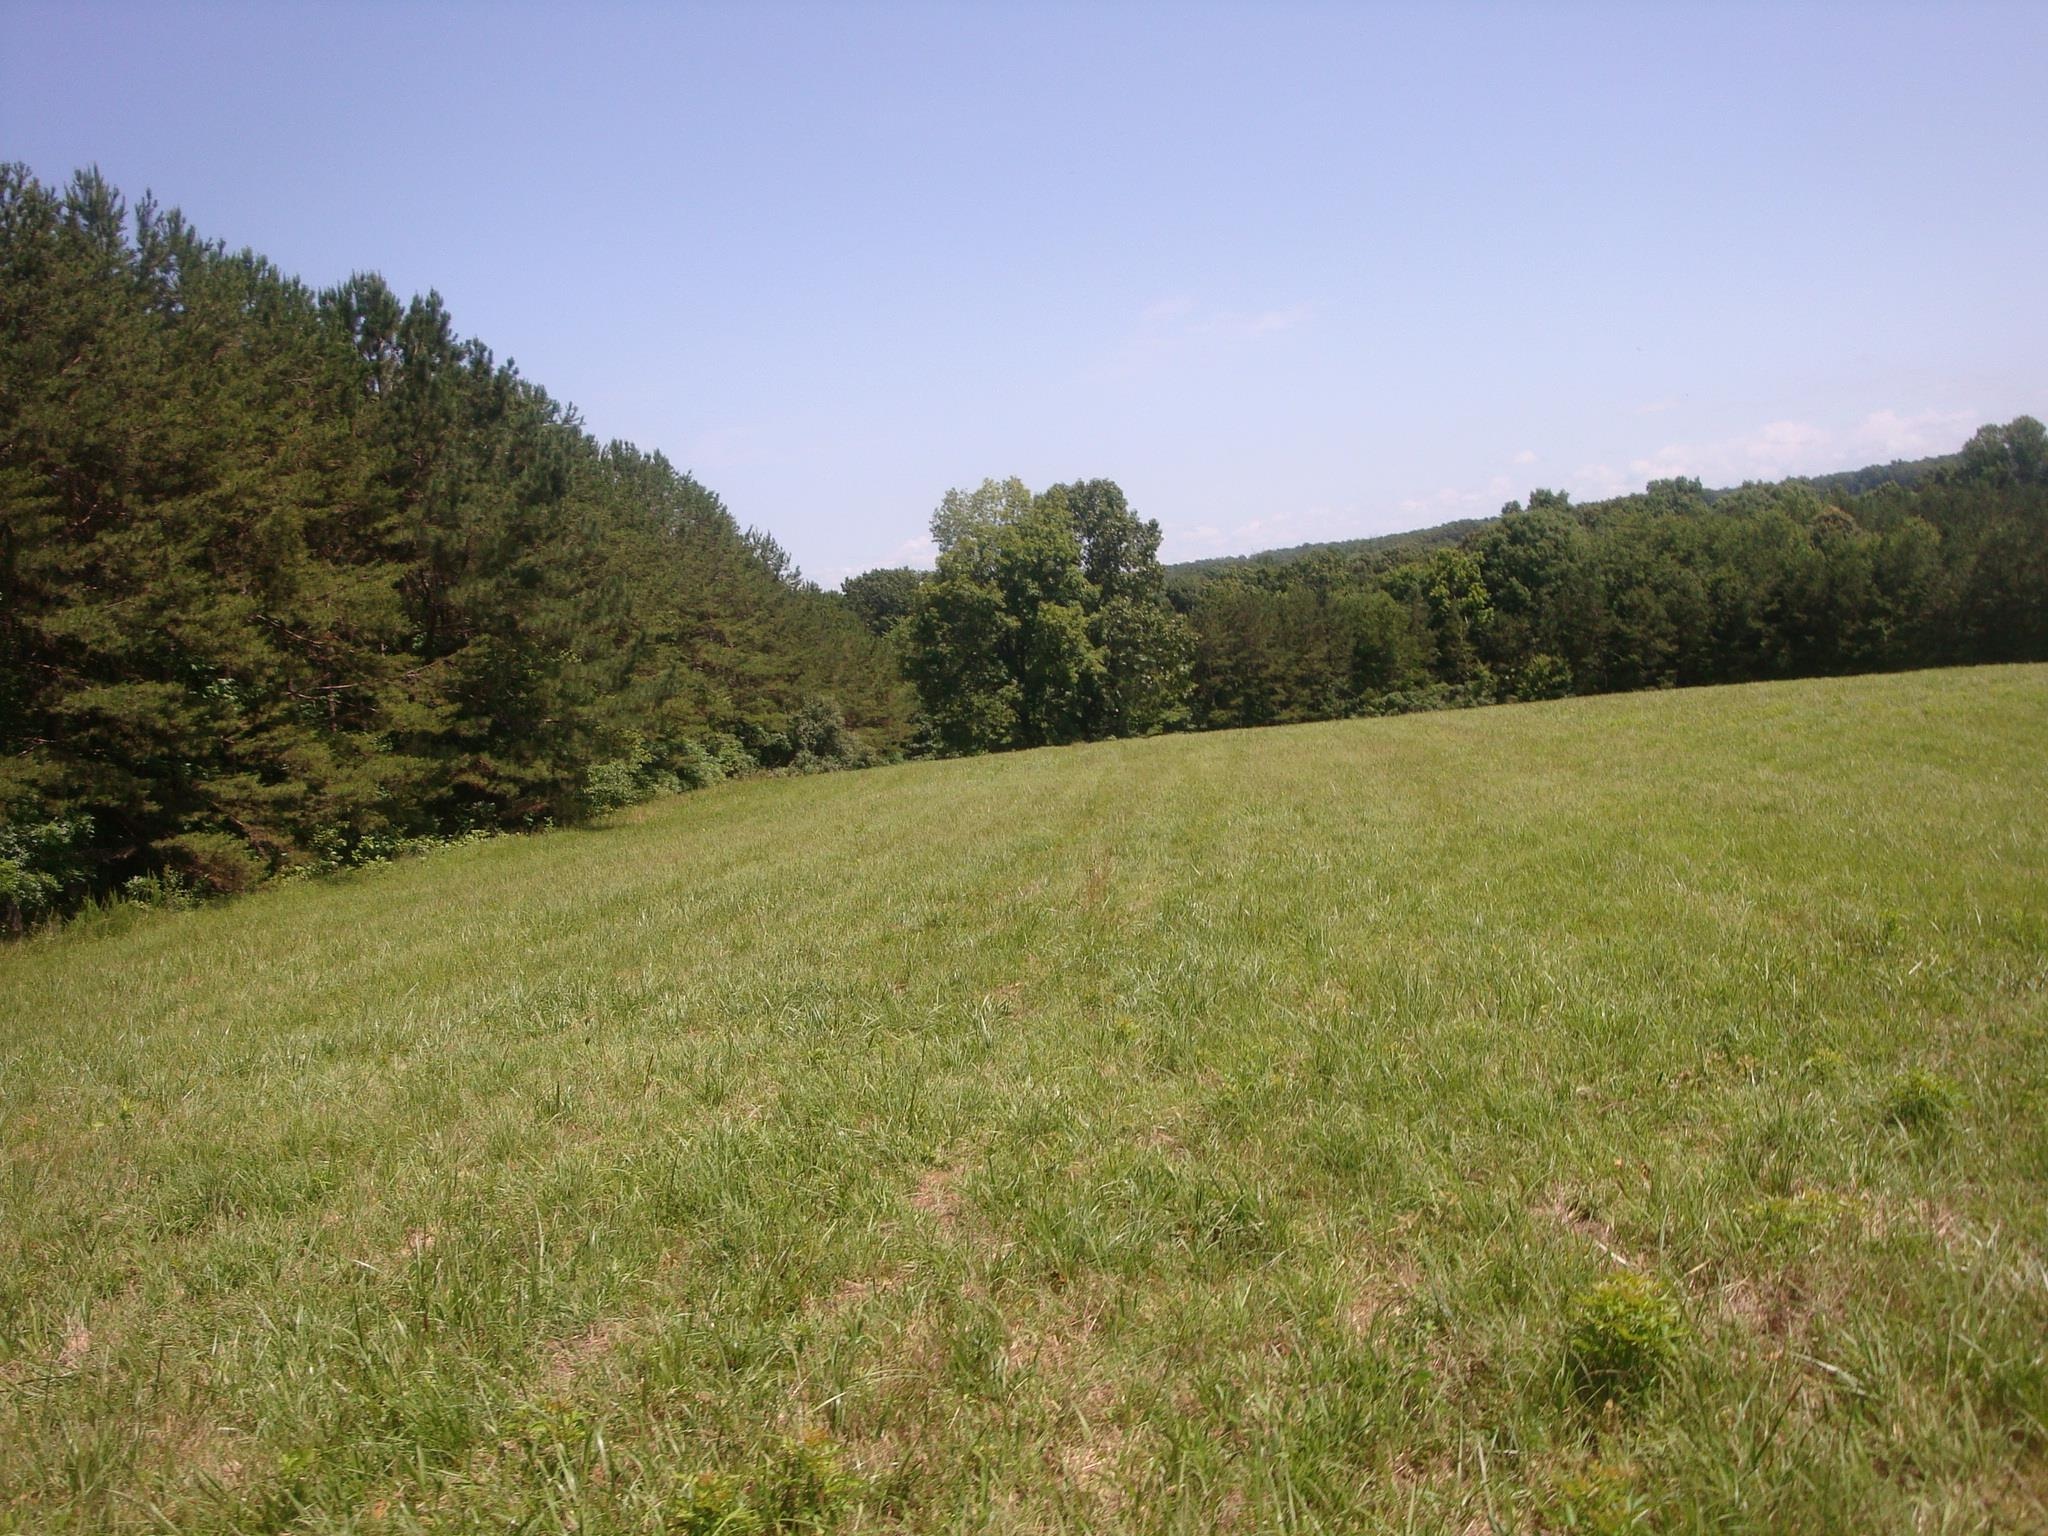 0 Central TurnPike, Summertown, TN 38483 - Summertown, TN real estate listing